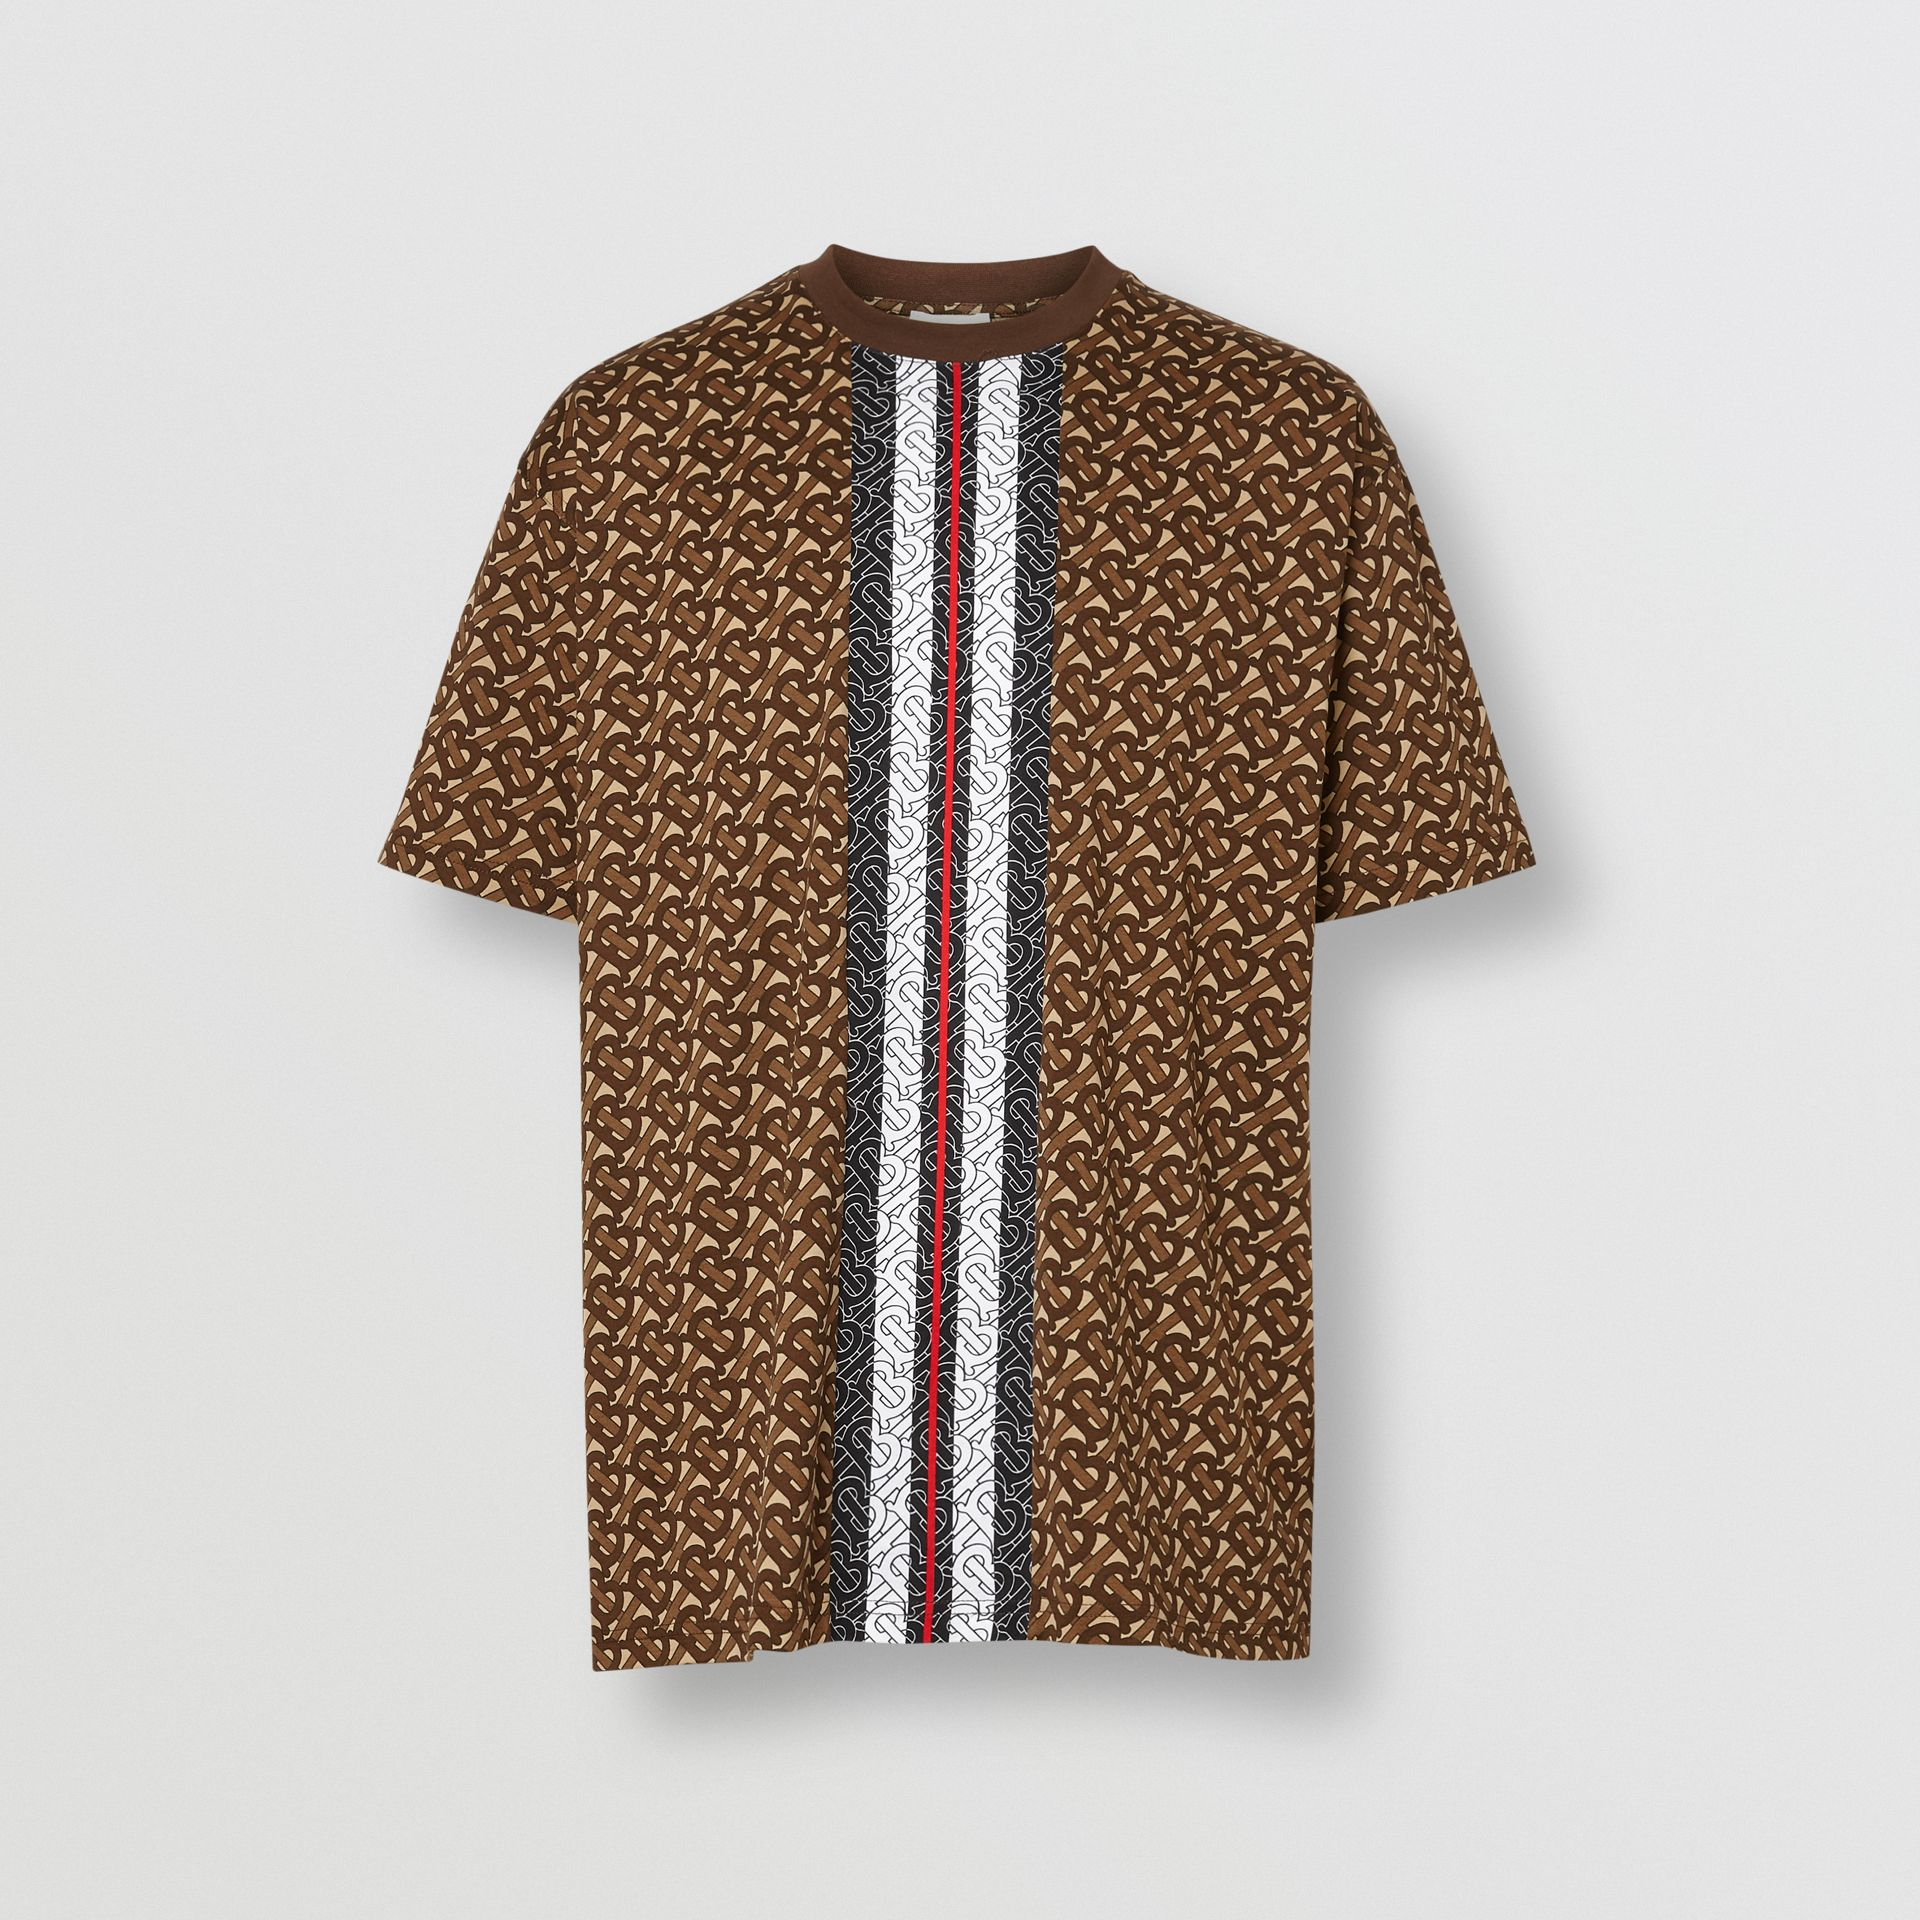 Monogram Stripe Print Cotton T-shirt in Bridle Brown - Men | Burberry - gallery image 3